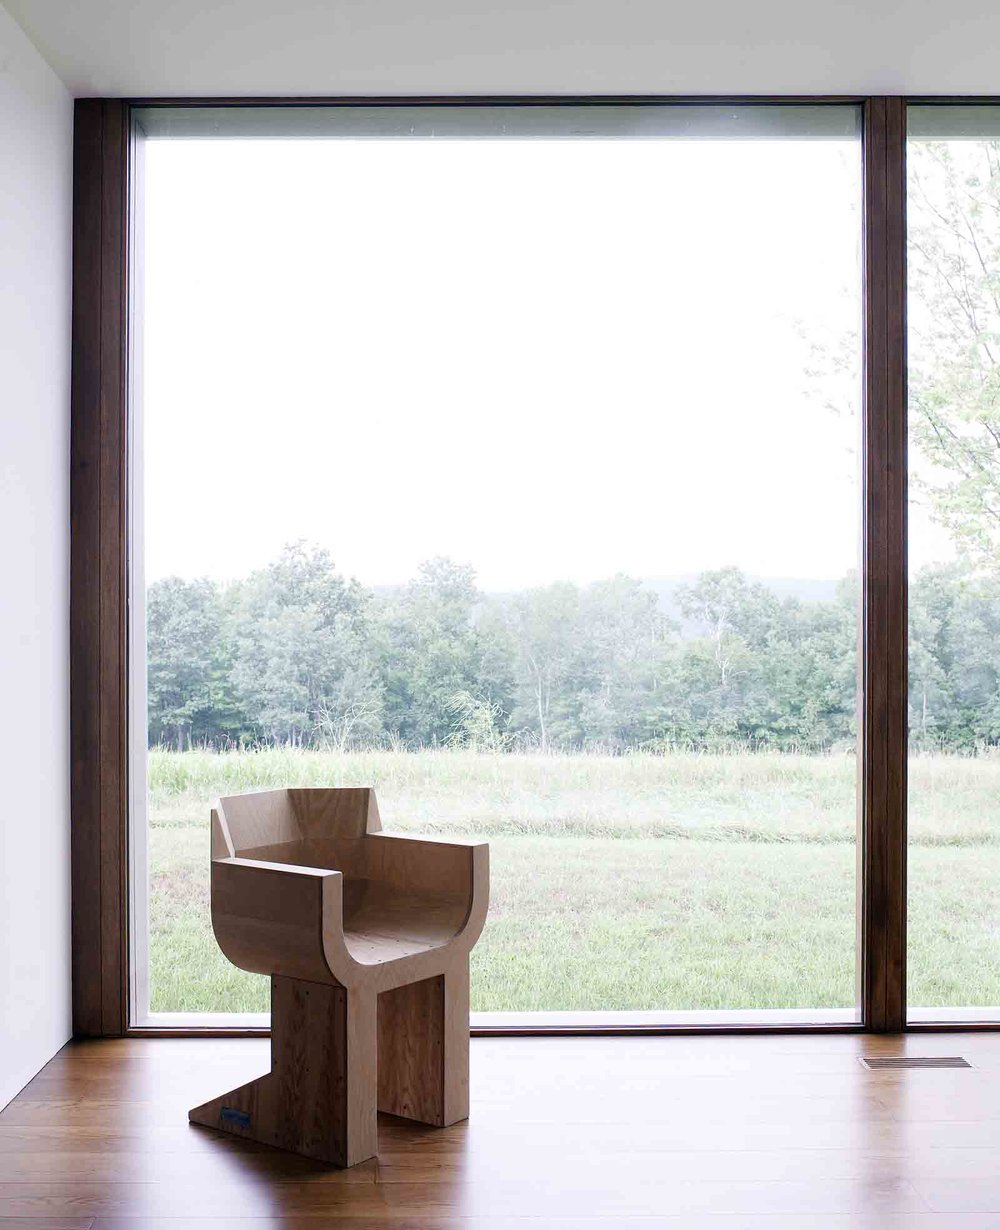 A Rick Owens chair in an upstate NY home by Ai Wei Wei. Image by Richard Powers.jpg